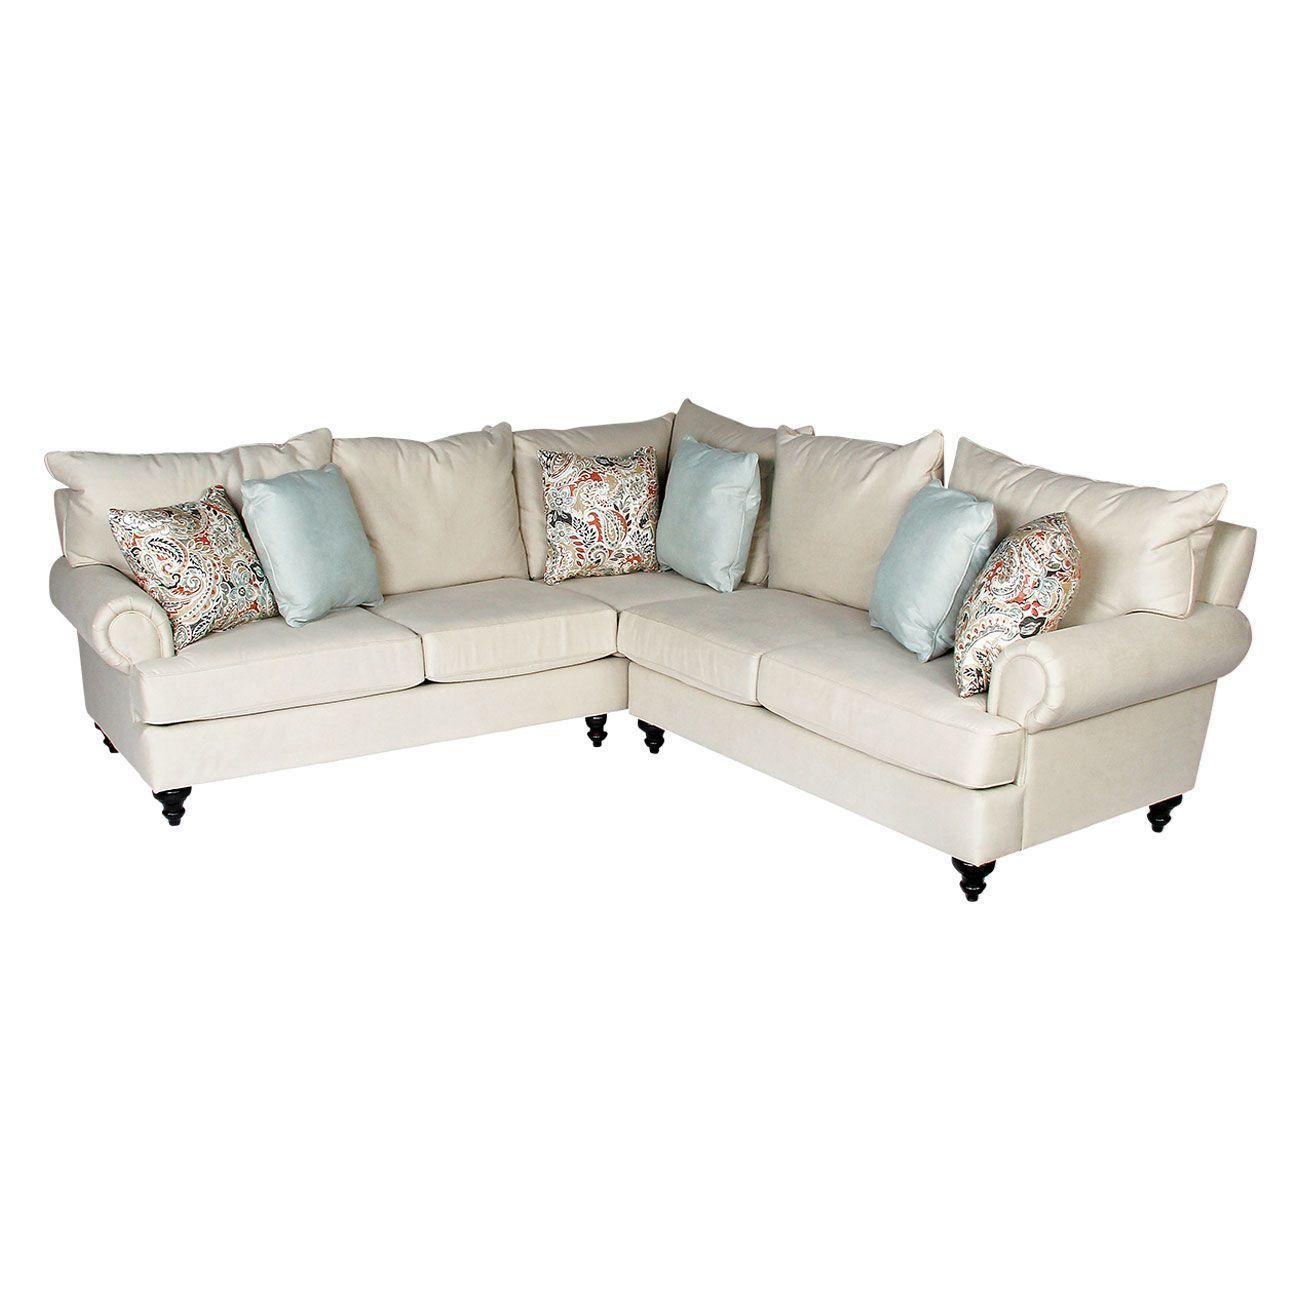 Sofa Outlet Paisley Shop The Rosalie 2 Piece Sectional At Woodstock Furniture